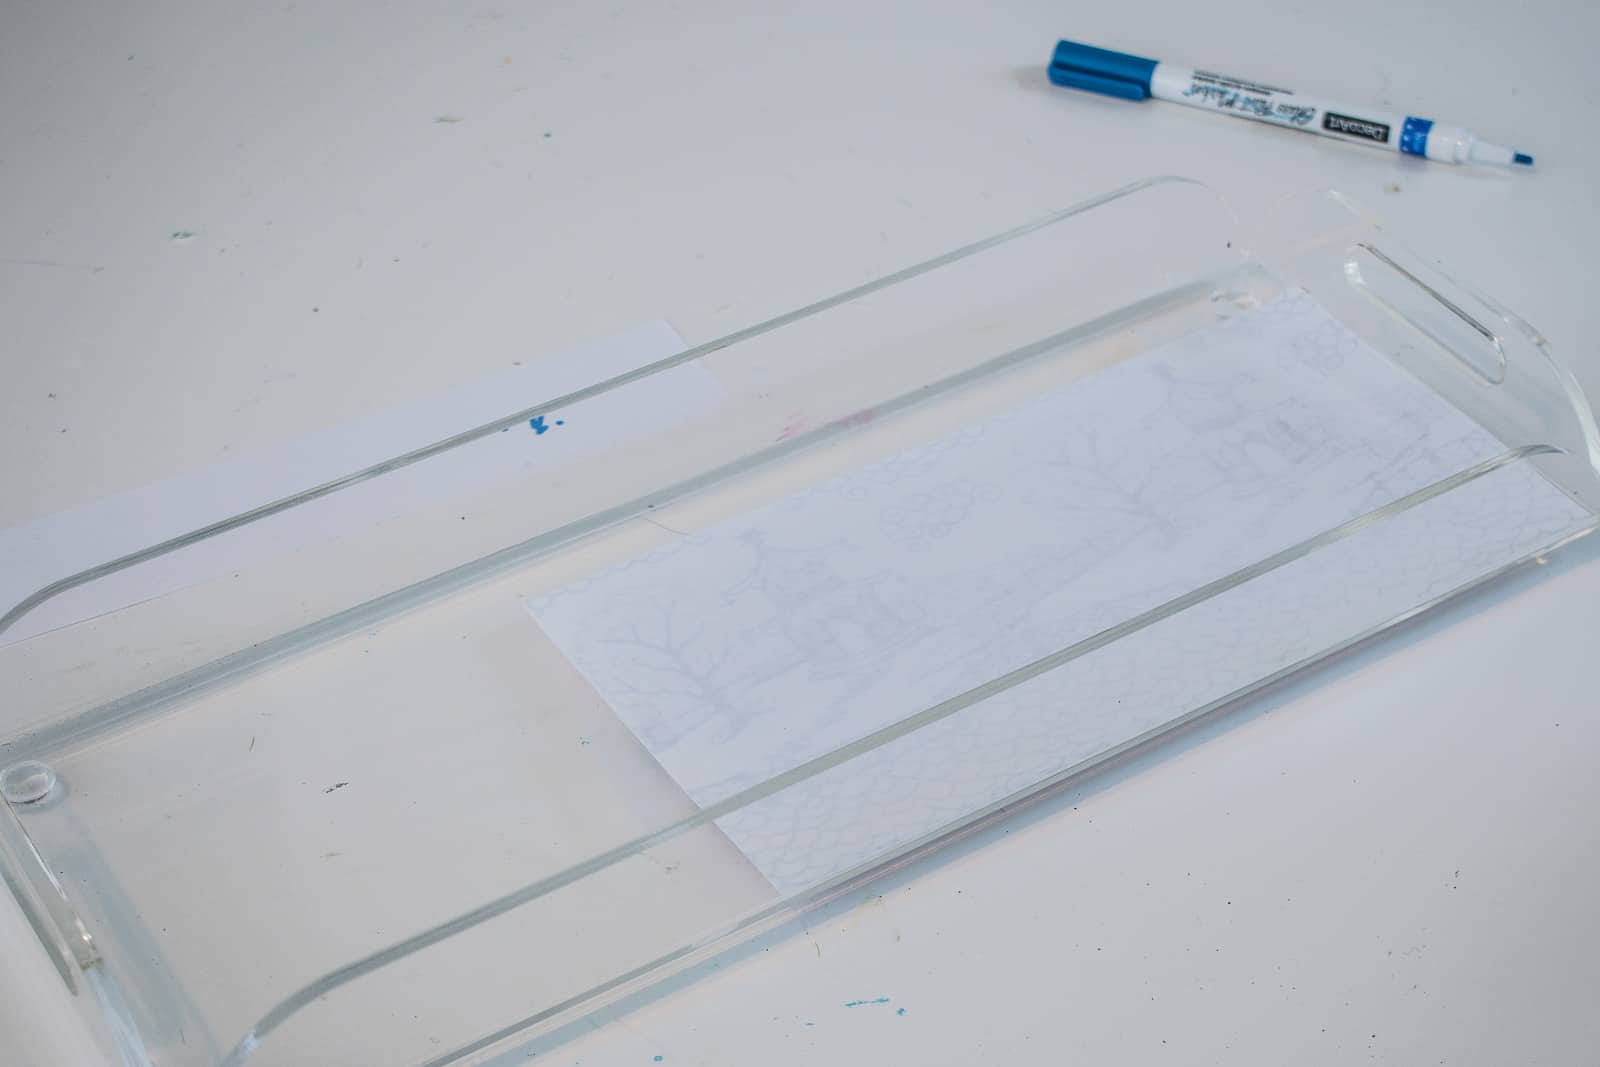 tape the pattern to the tray